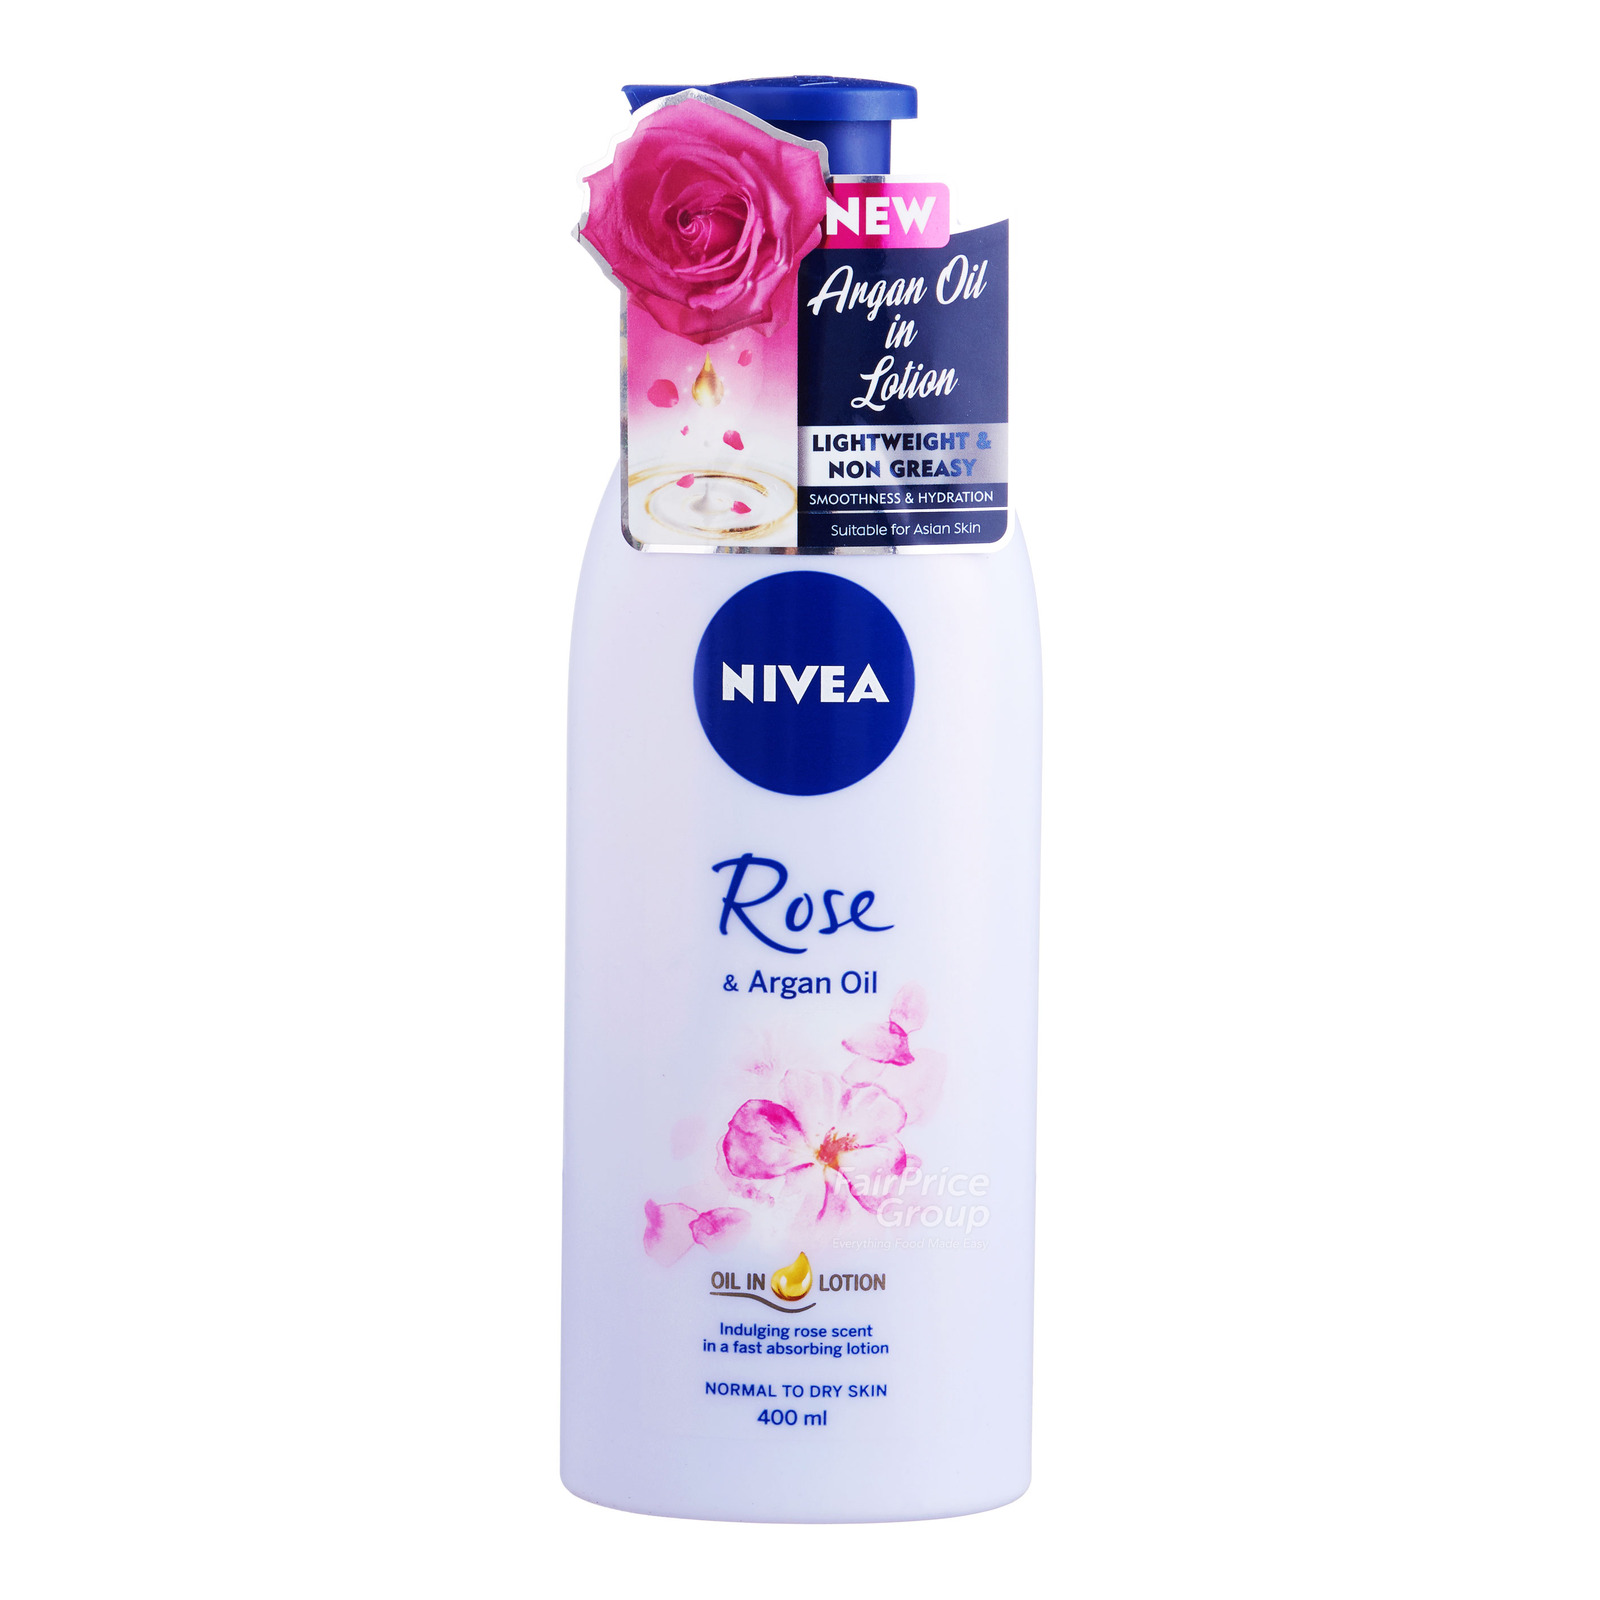 Nivea Body Oil In Lotion Rose & Argan Oil, 400ml